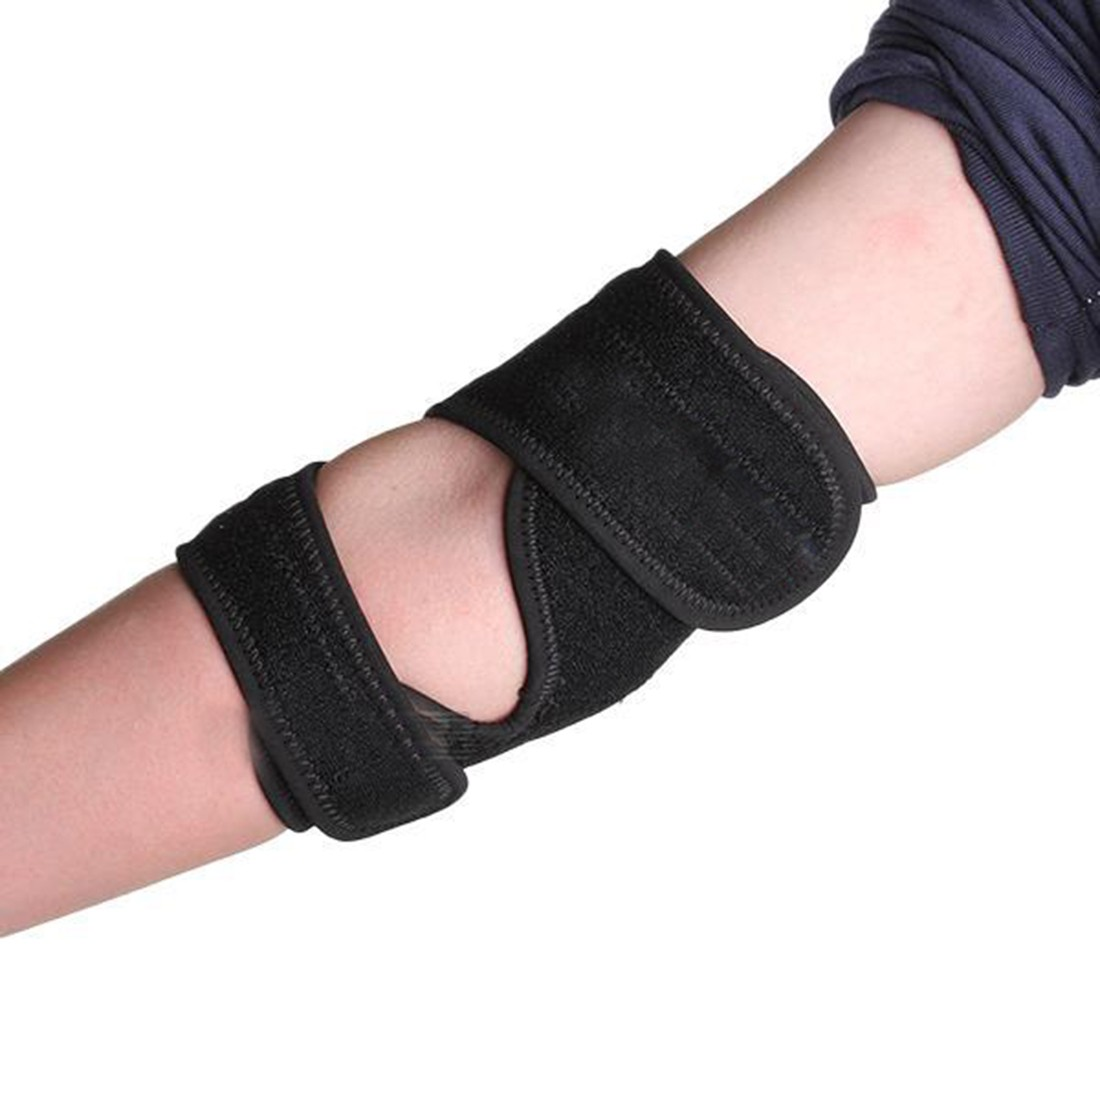 2016 New Arrivals High Quality Tennis Sports adjustable Elbow Elastic Pad Protector Brace Band Support Wrap<br><br>Aliexpress